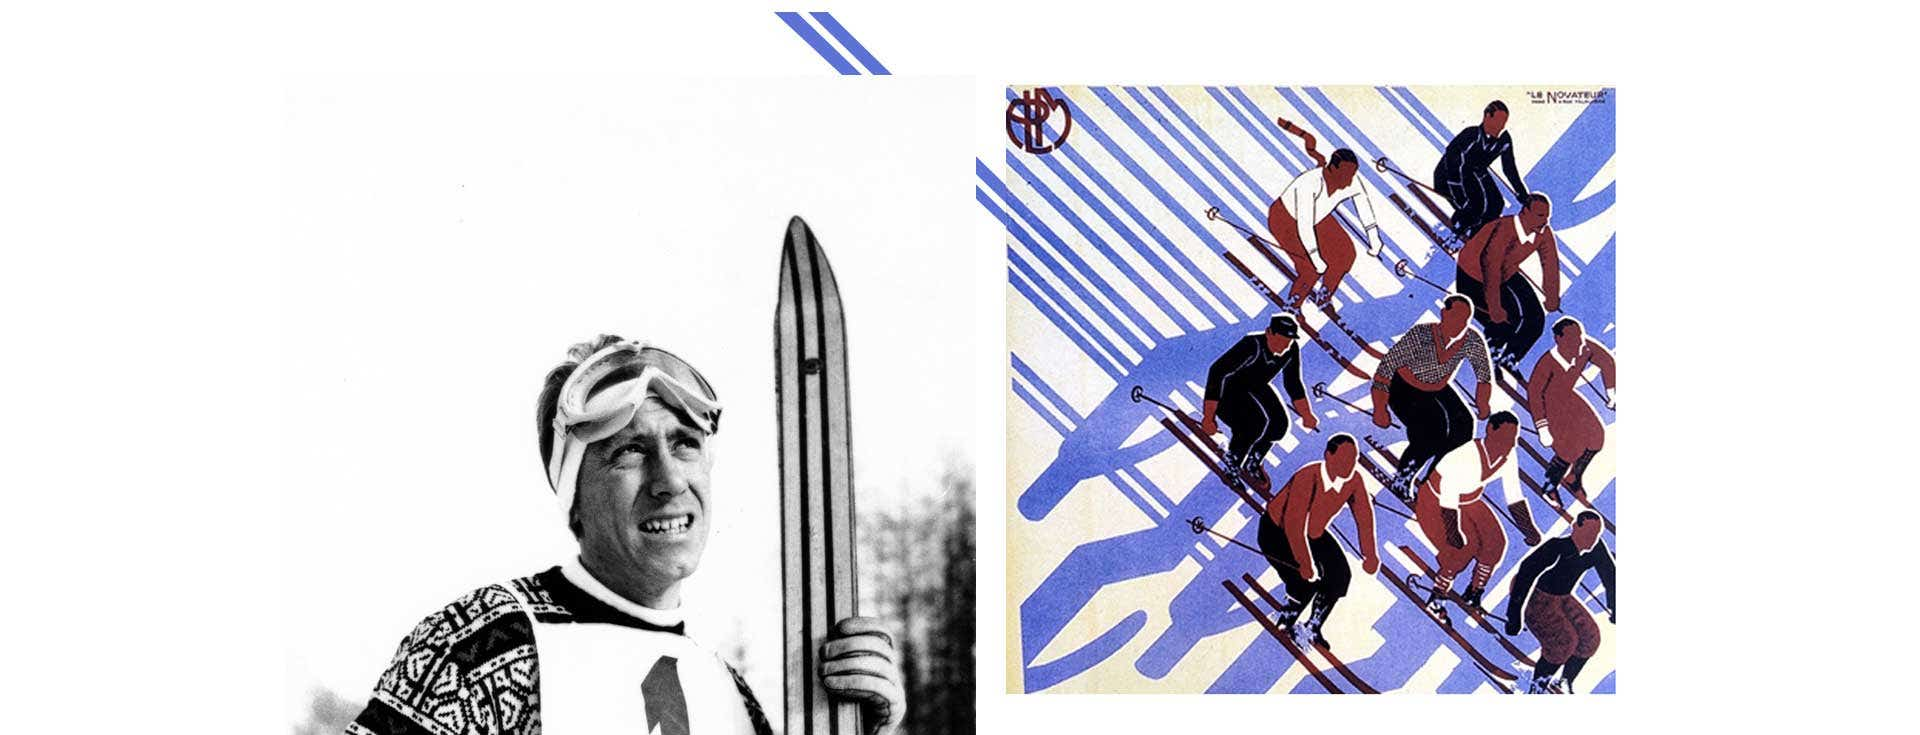 Rossignol history iconic codes heritage stripes